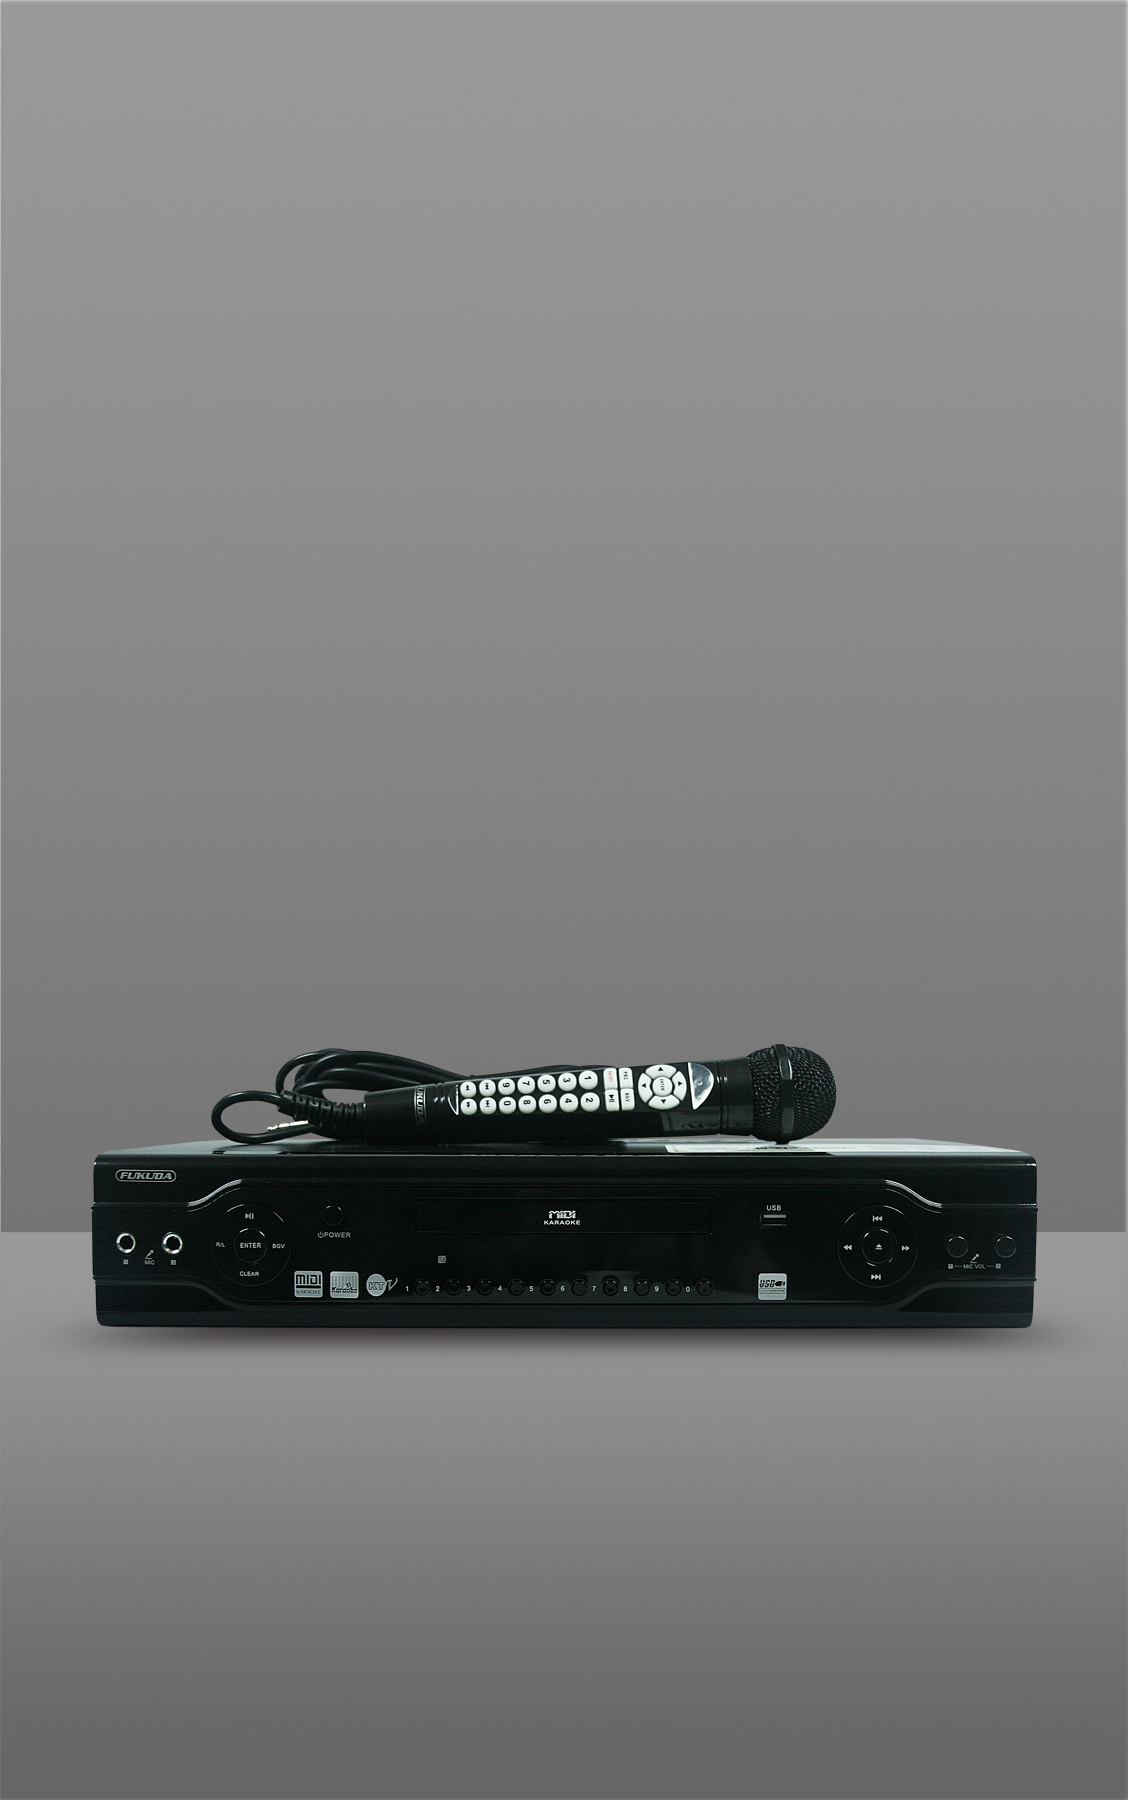 2.1 CH MIDI/DVD PLAYER WITH MICROPHONE